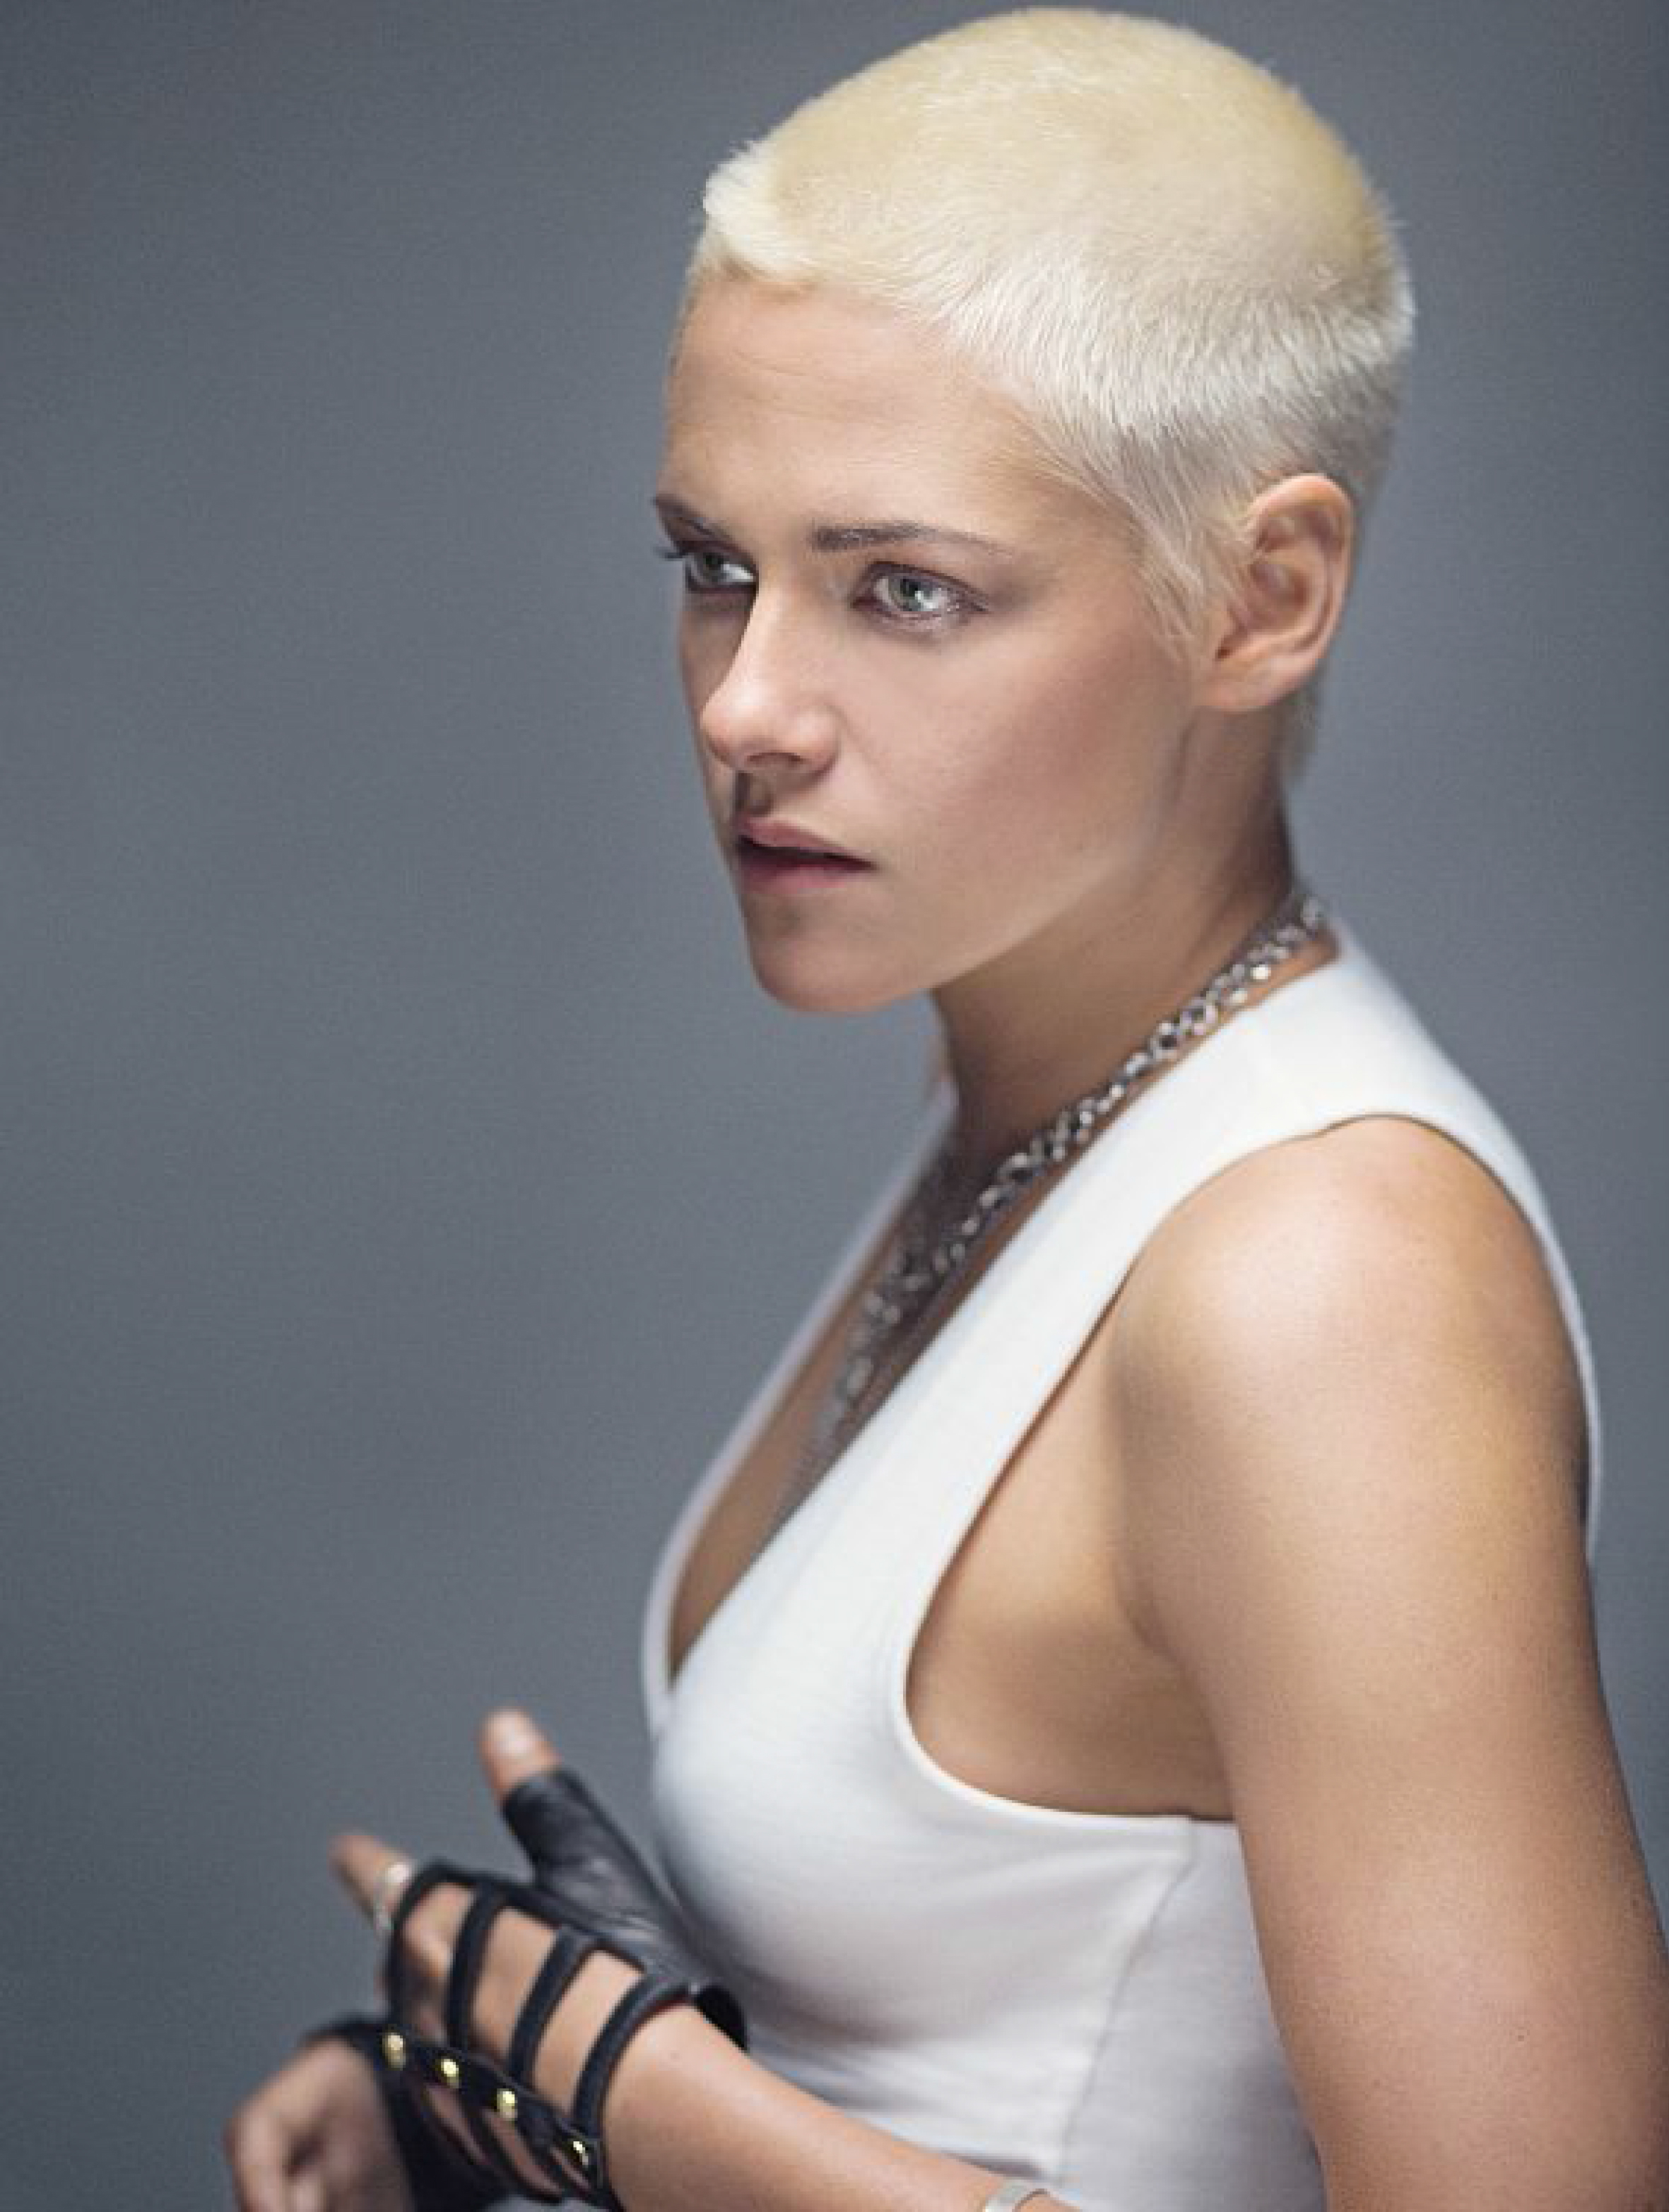 Kristen Stewart Talks With Italy Io Donna Magazine Talking Kristen Stewart